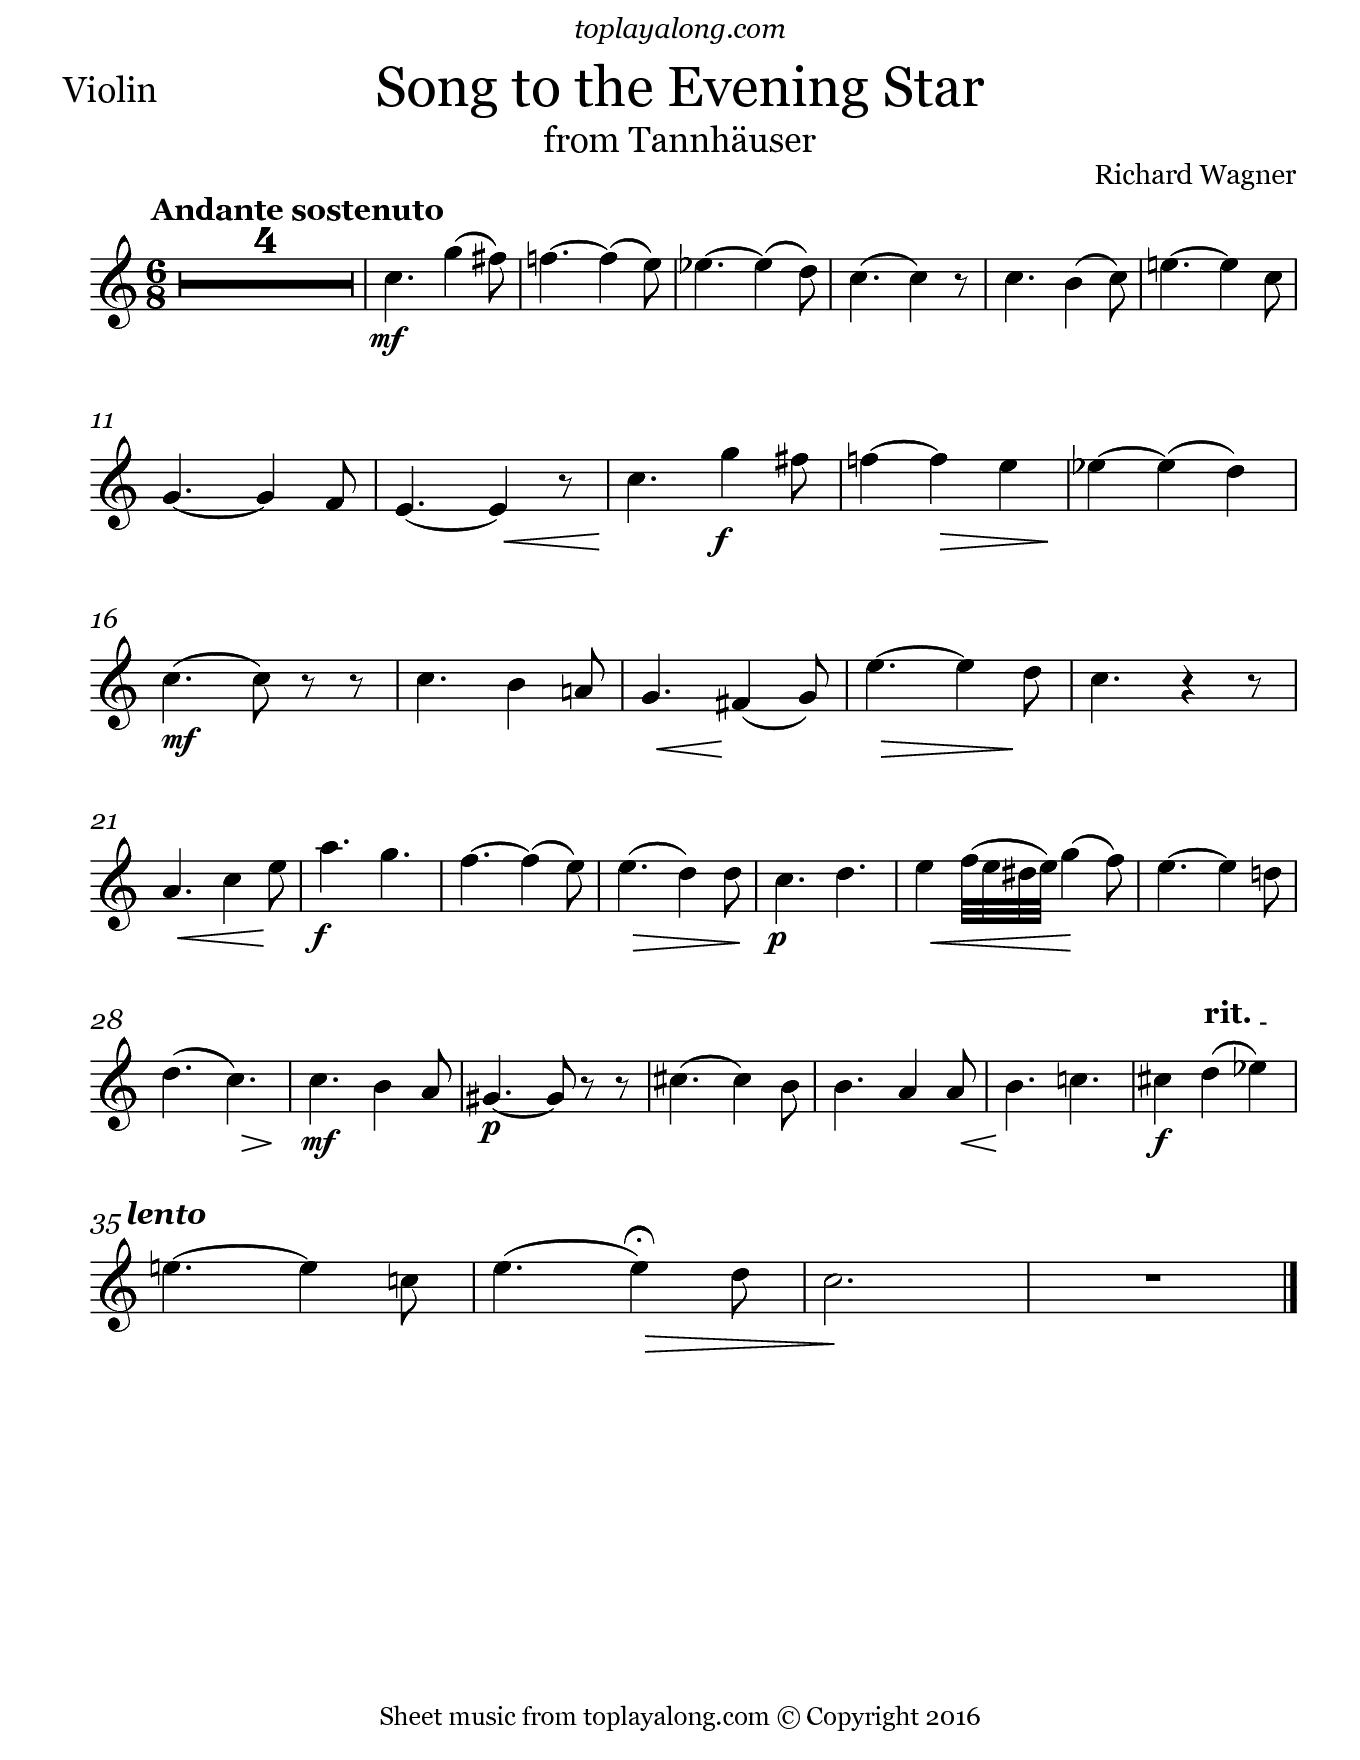 Song to the Evening Star from Tannhäuser by Wagner. Sheet music for Violin, page 1.